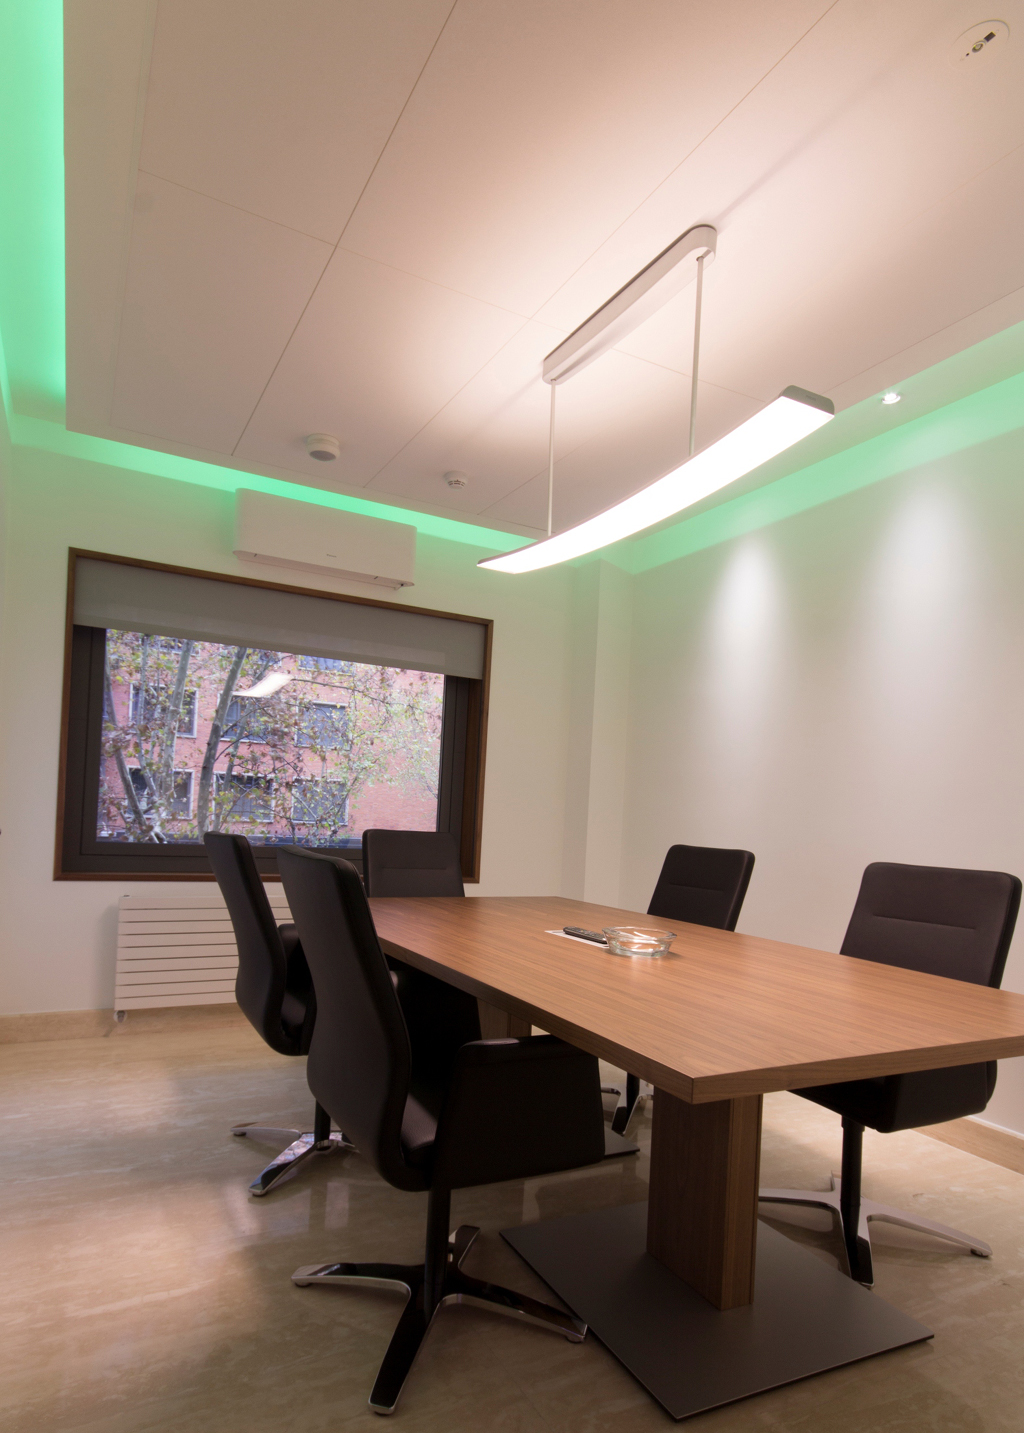 Hm value design their offices with philips led luminaires for Sala de reuniones